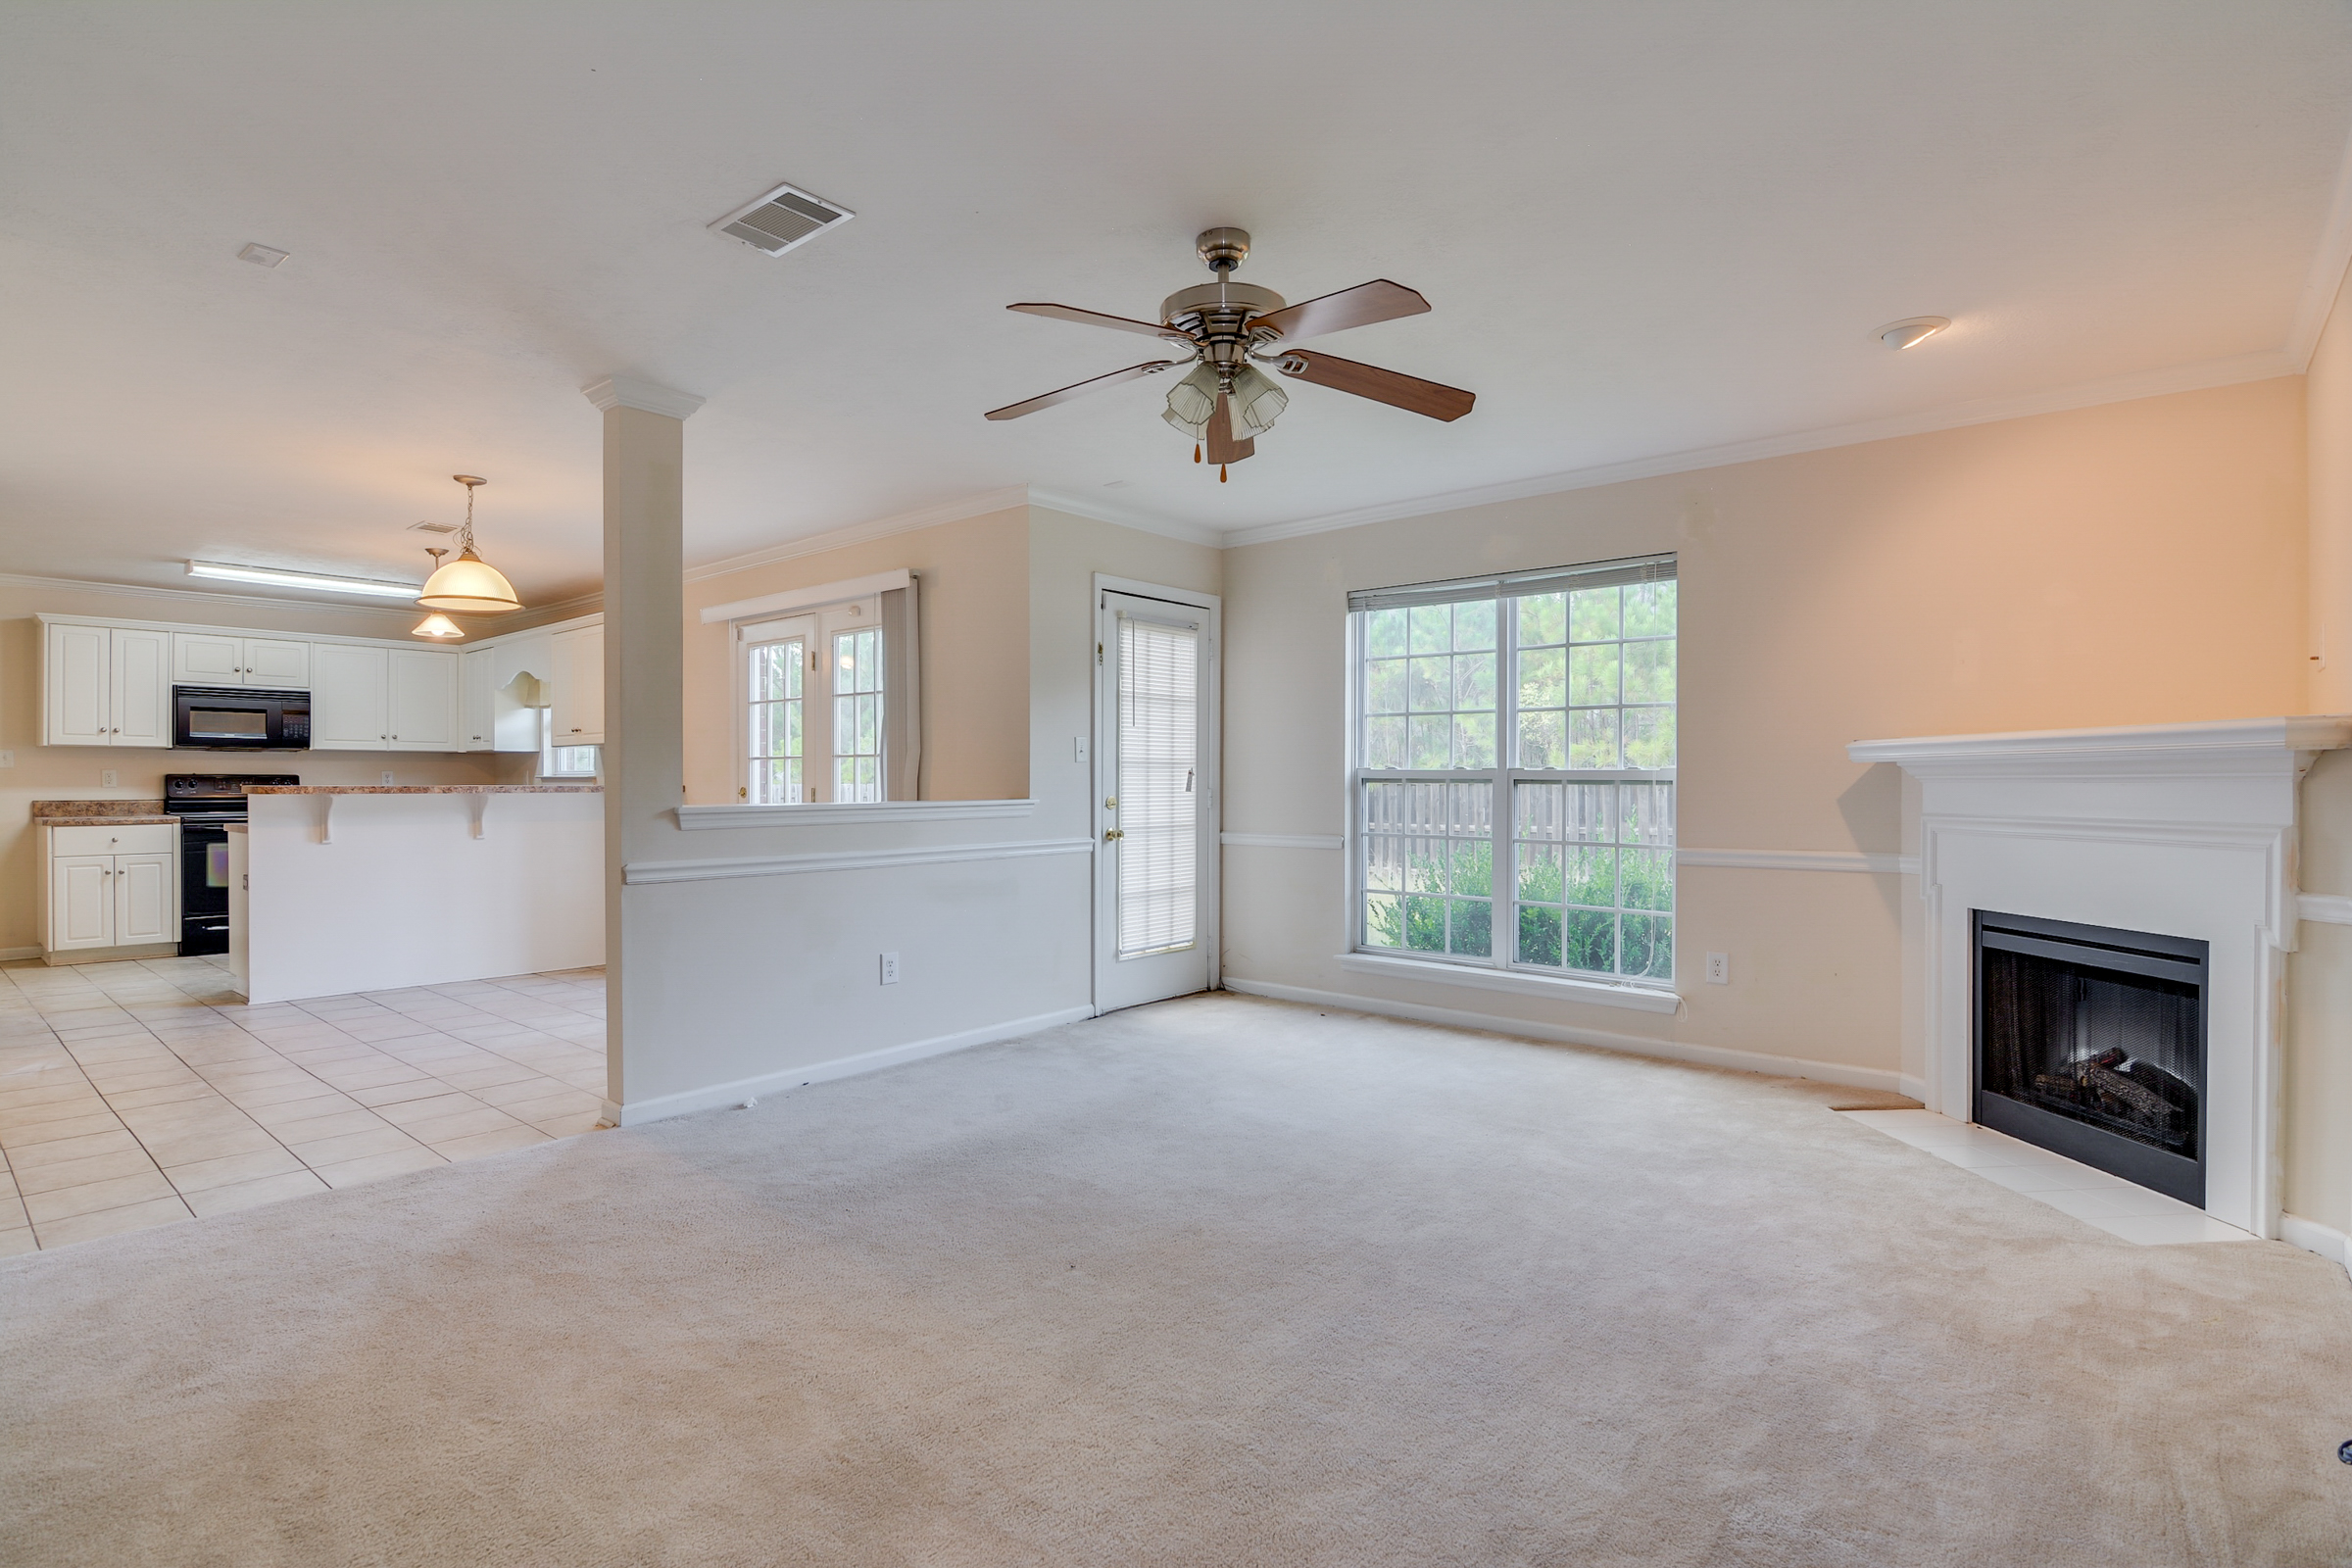 Cozy Family Home in Grovetown Jim Hadden Home Sales